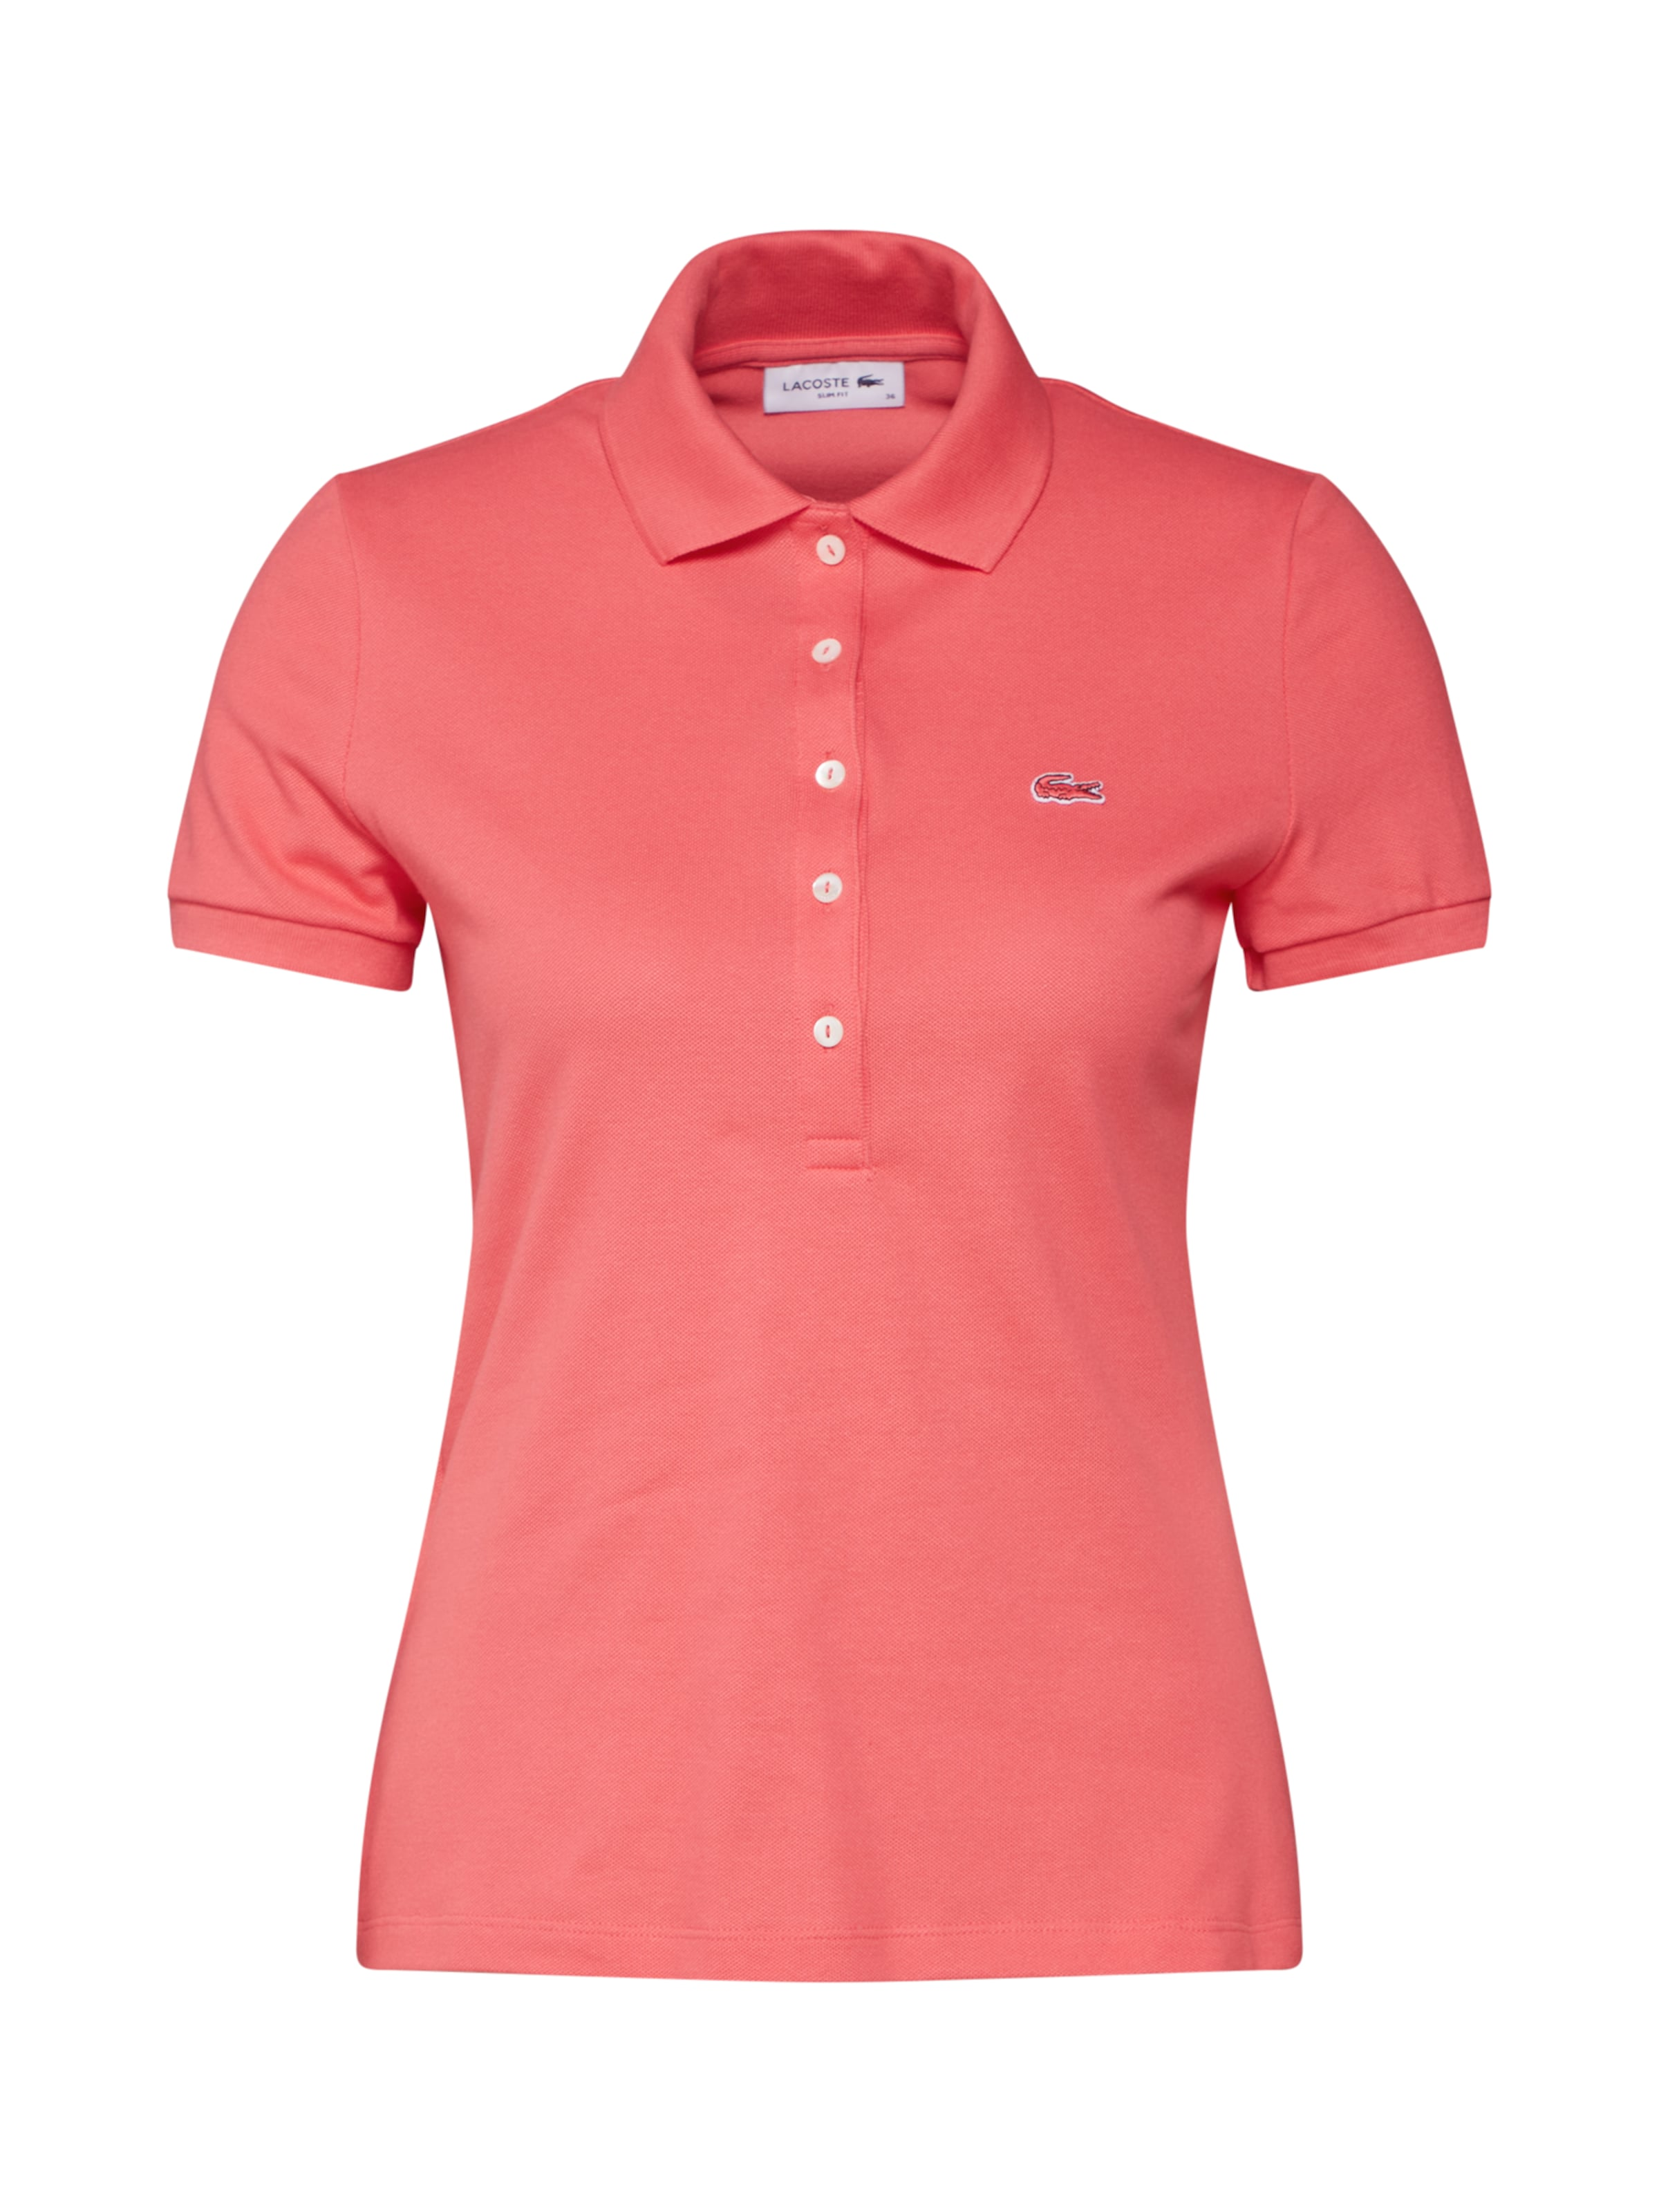 In Koralle Lacoste Lacoste Poloshirt In Koralle Koralle Lacoste Poloshirt Lacoste Poloshirt In sthrdQ